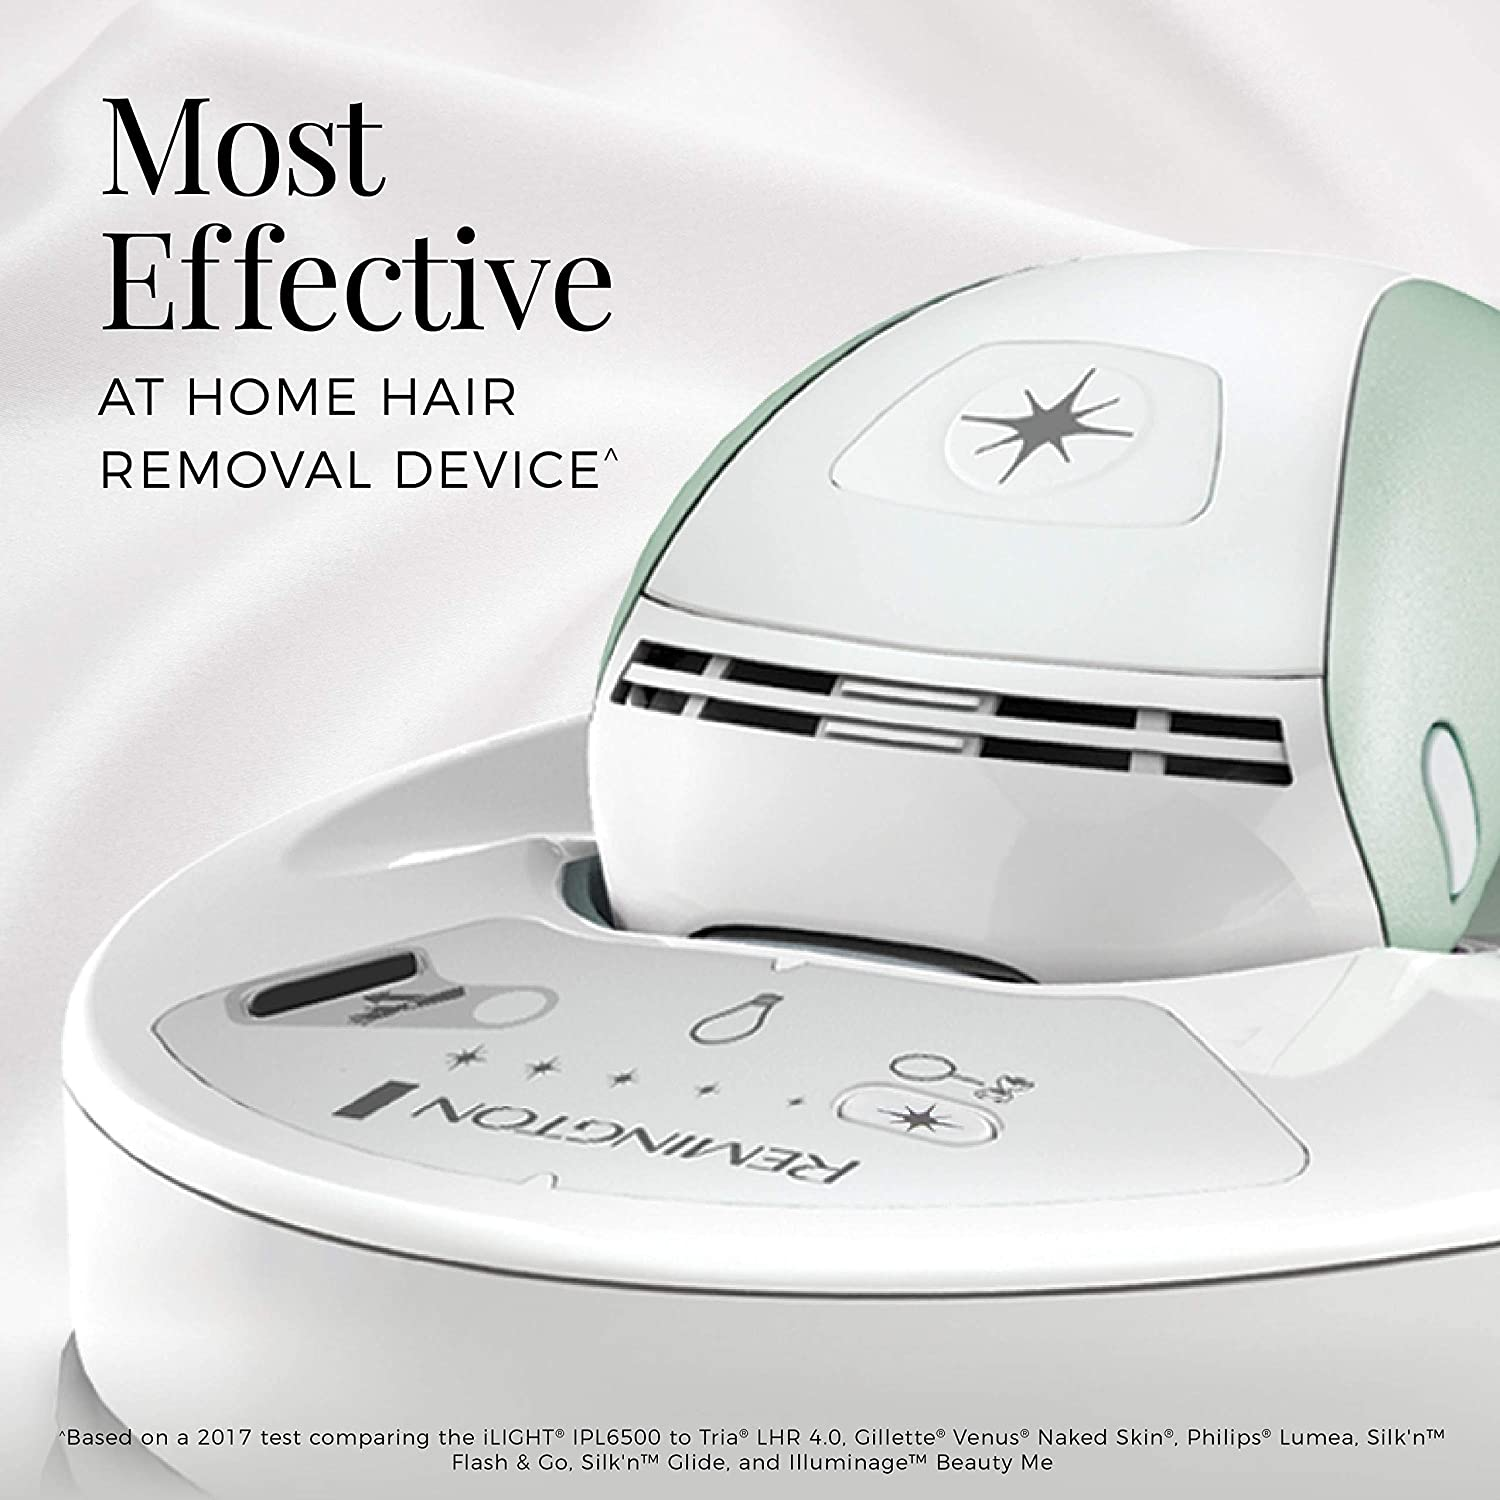 Remington IPL6500QFB iLight hair removal device